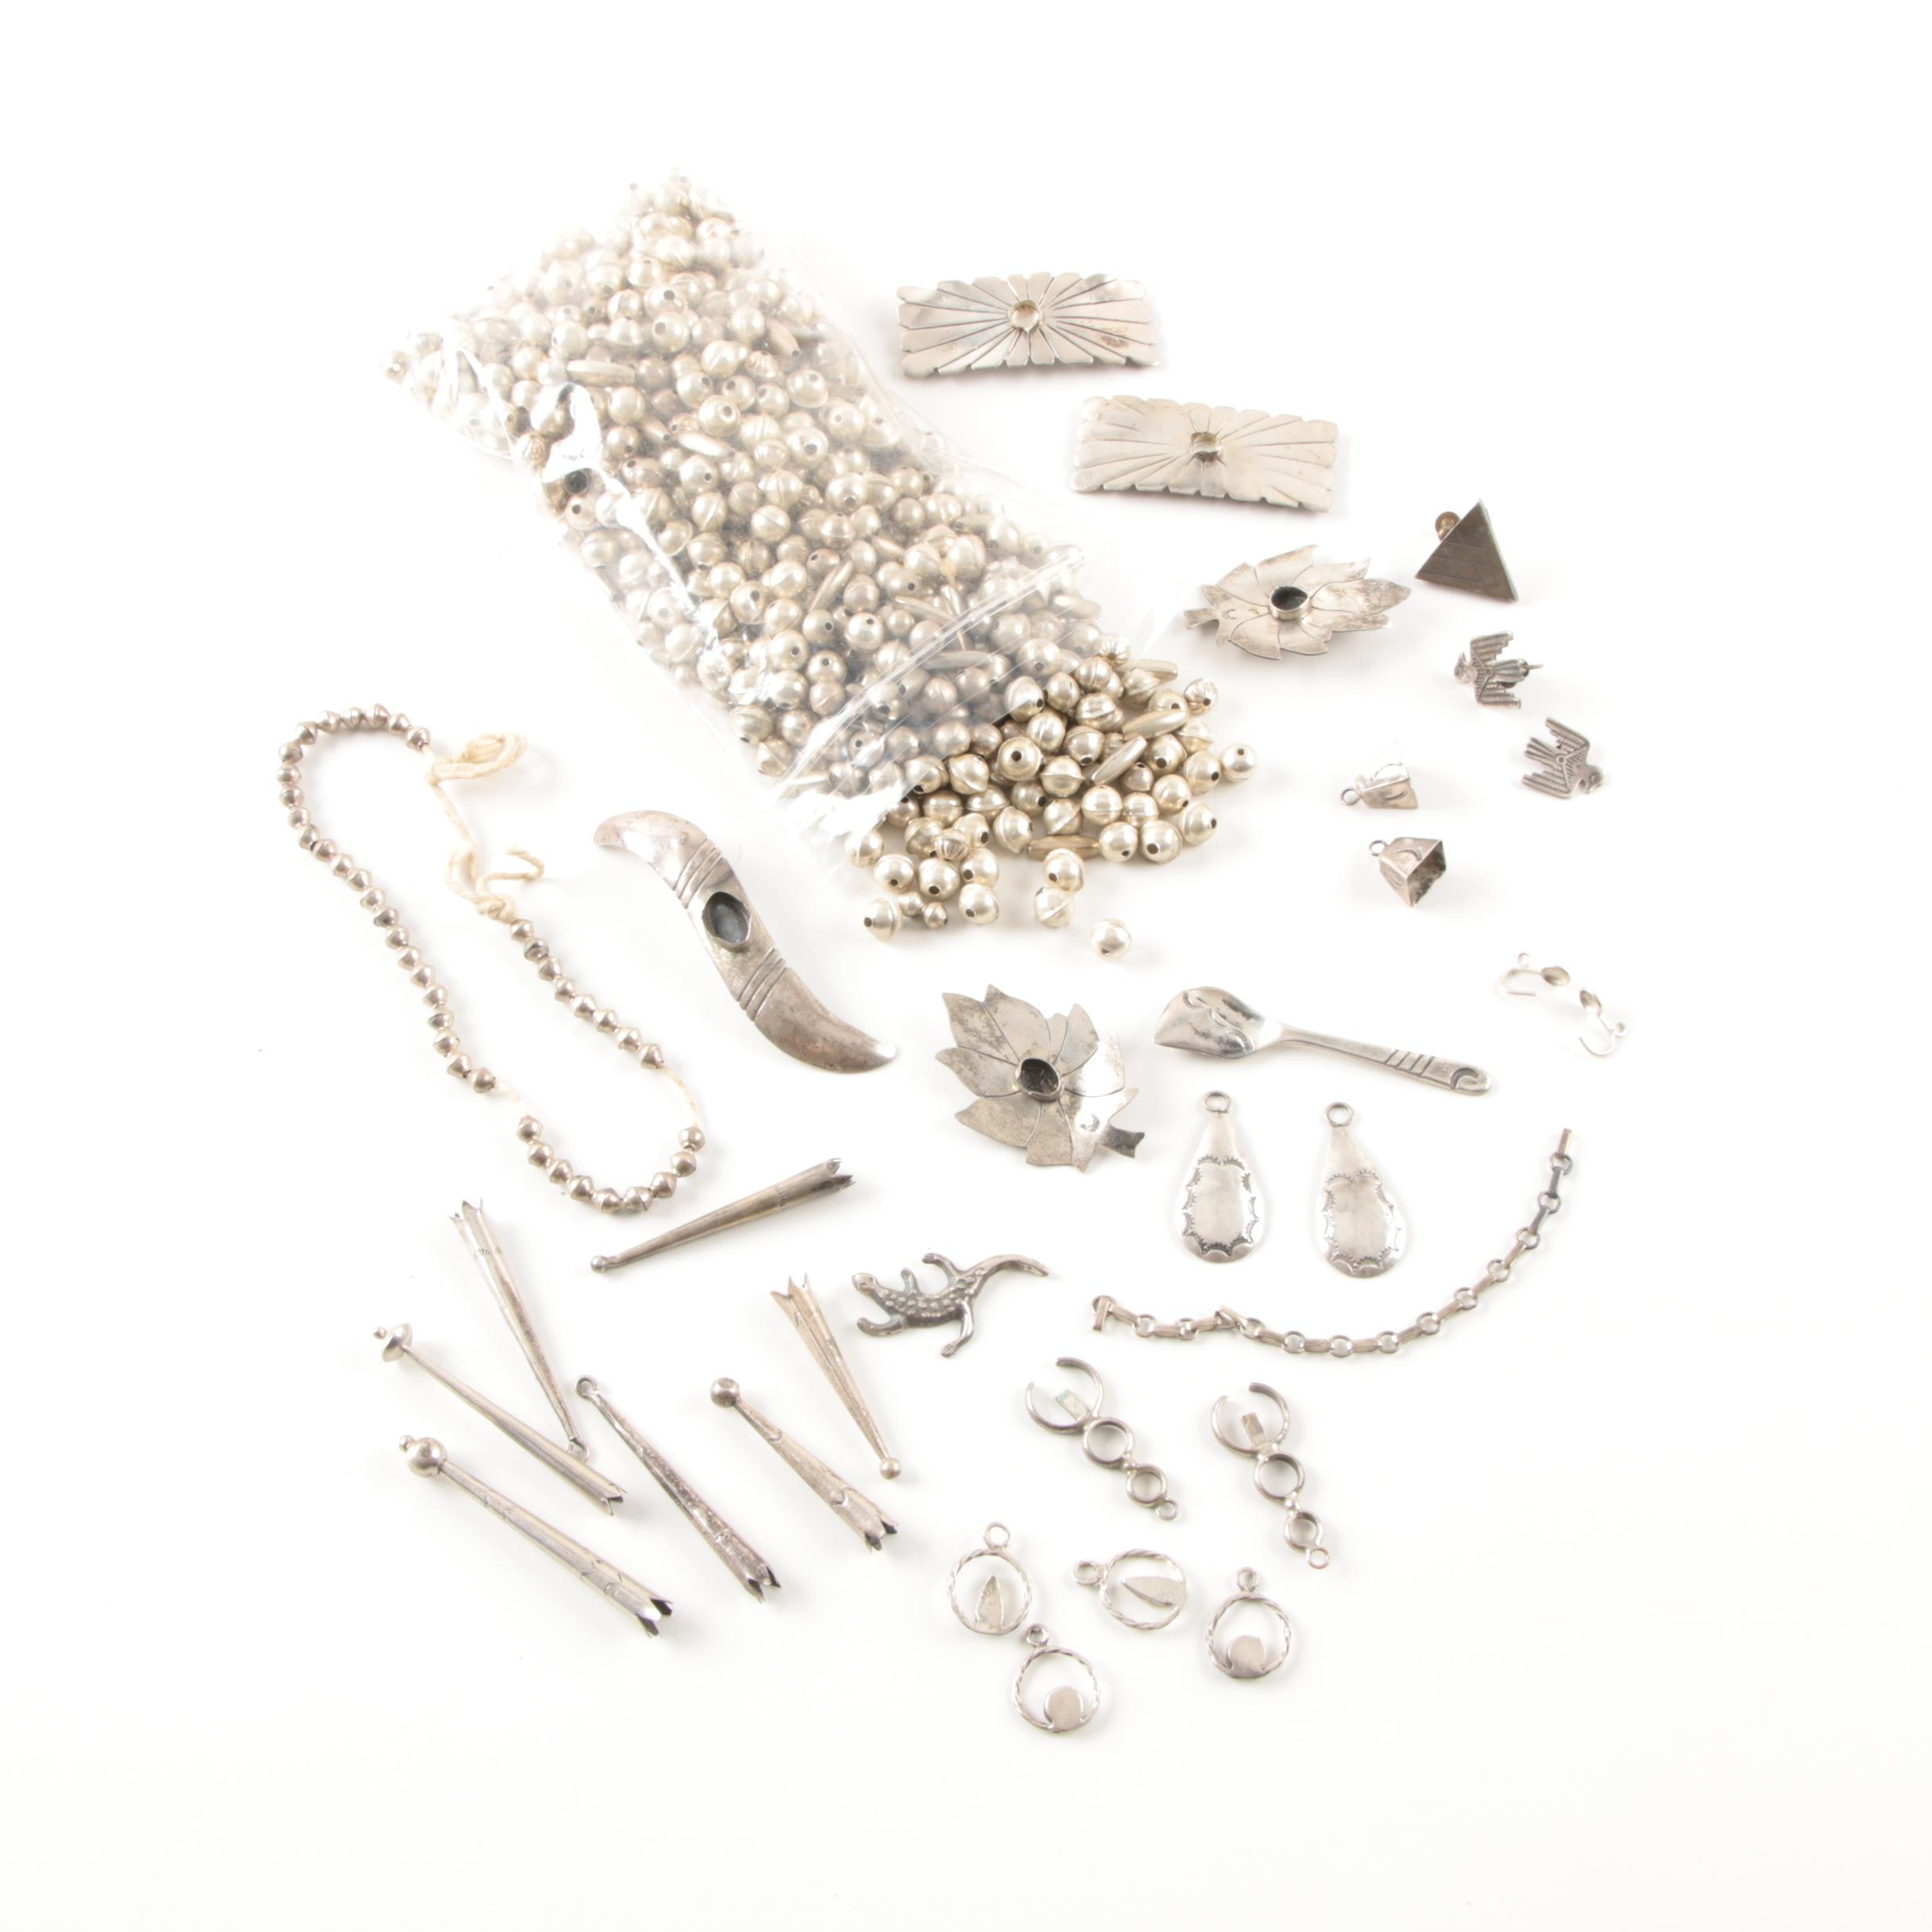 Sterling Silver Scrap Jewelry and Bench Beads